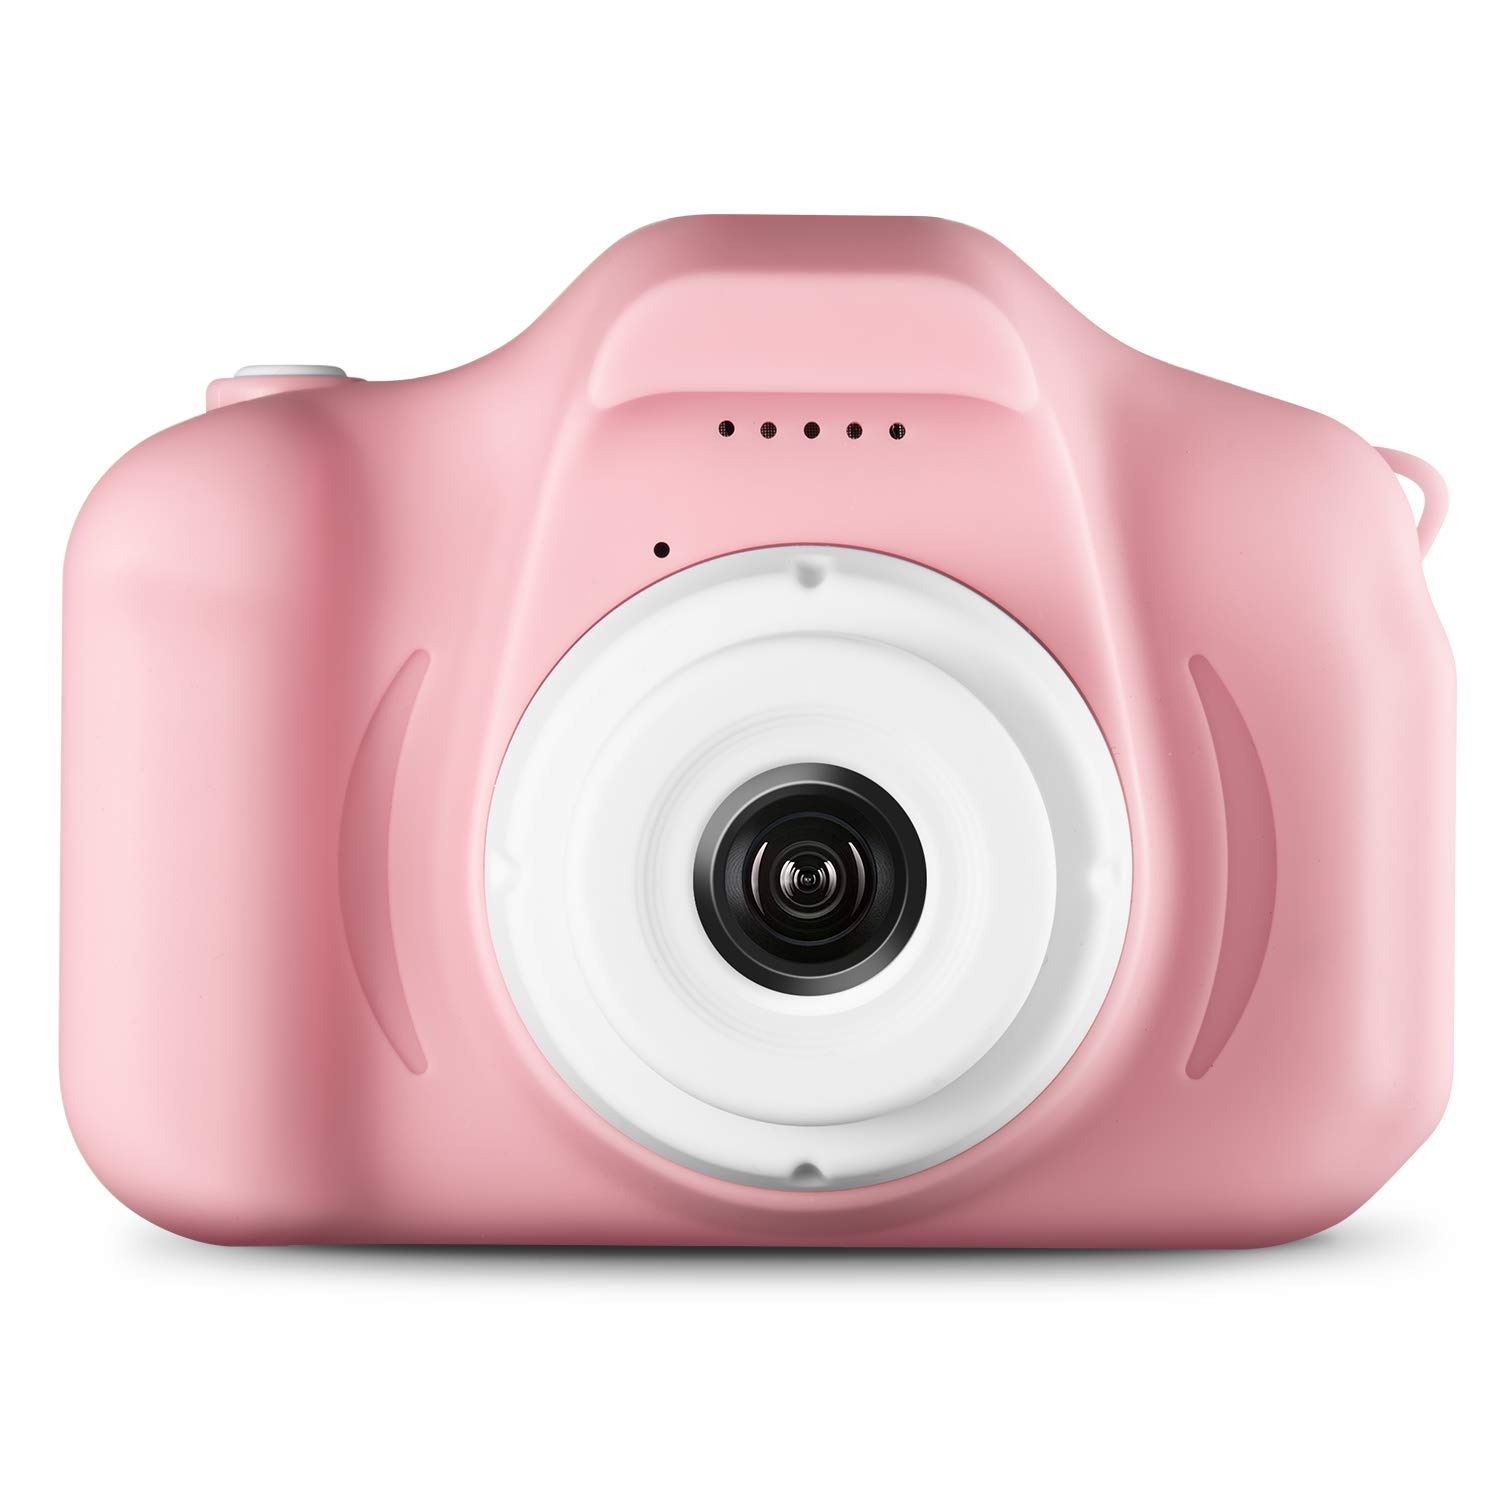 Agassi Kids Camera ,Digital Camera for Kids,Digital Video Camera Children Creative DIY Camcorder with Rechargeable Battery Birthday / Christmas / (16G TF Card Included),Pink by Agassi